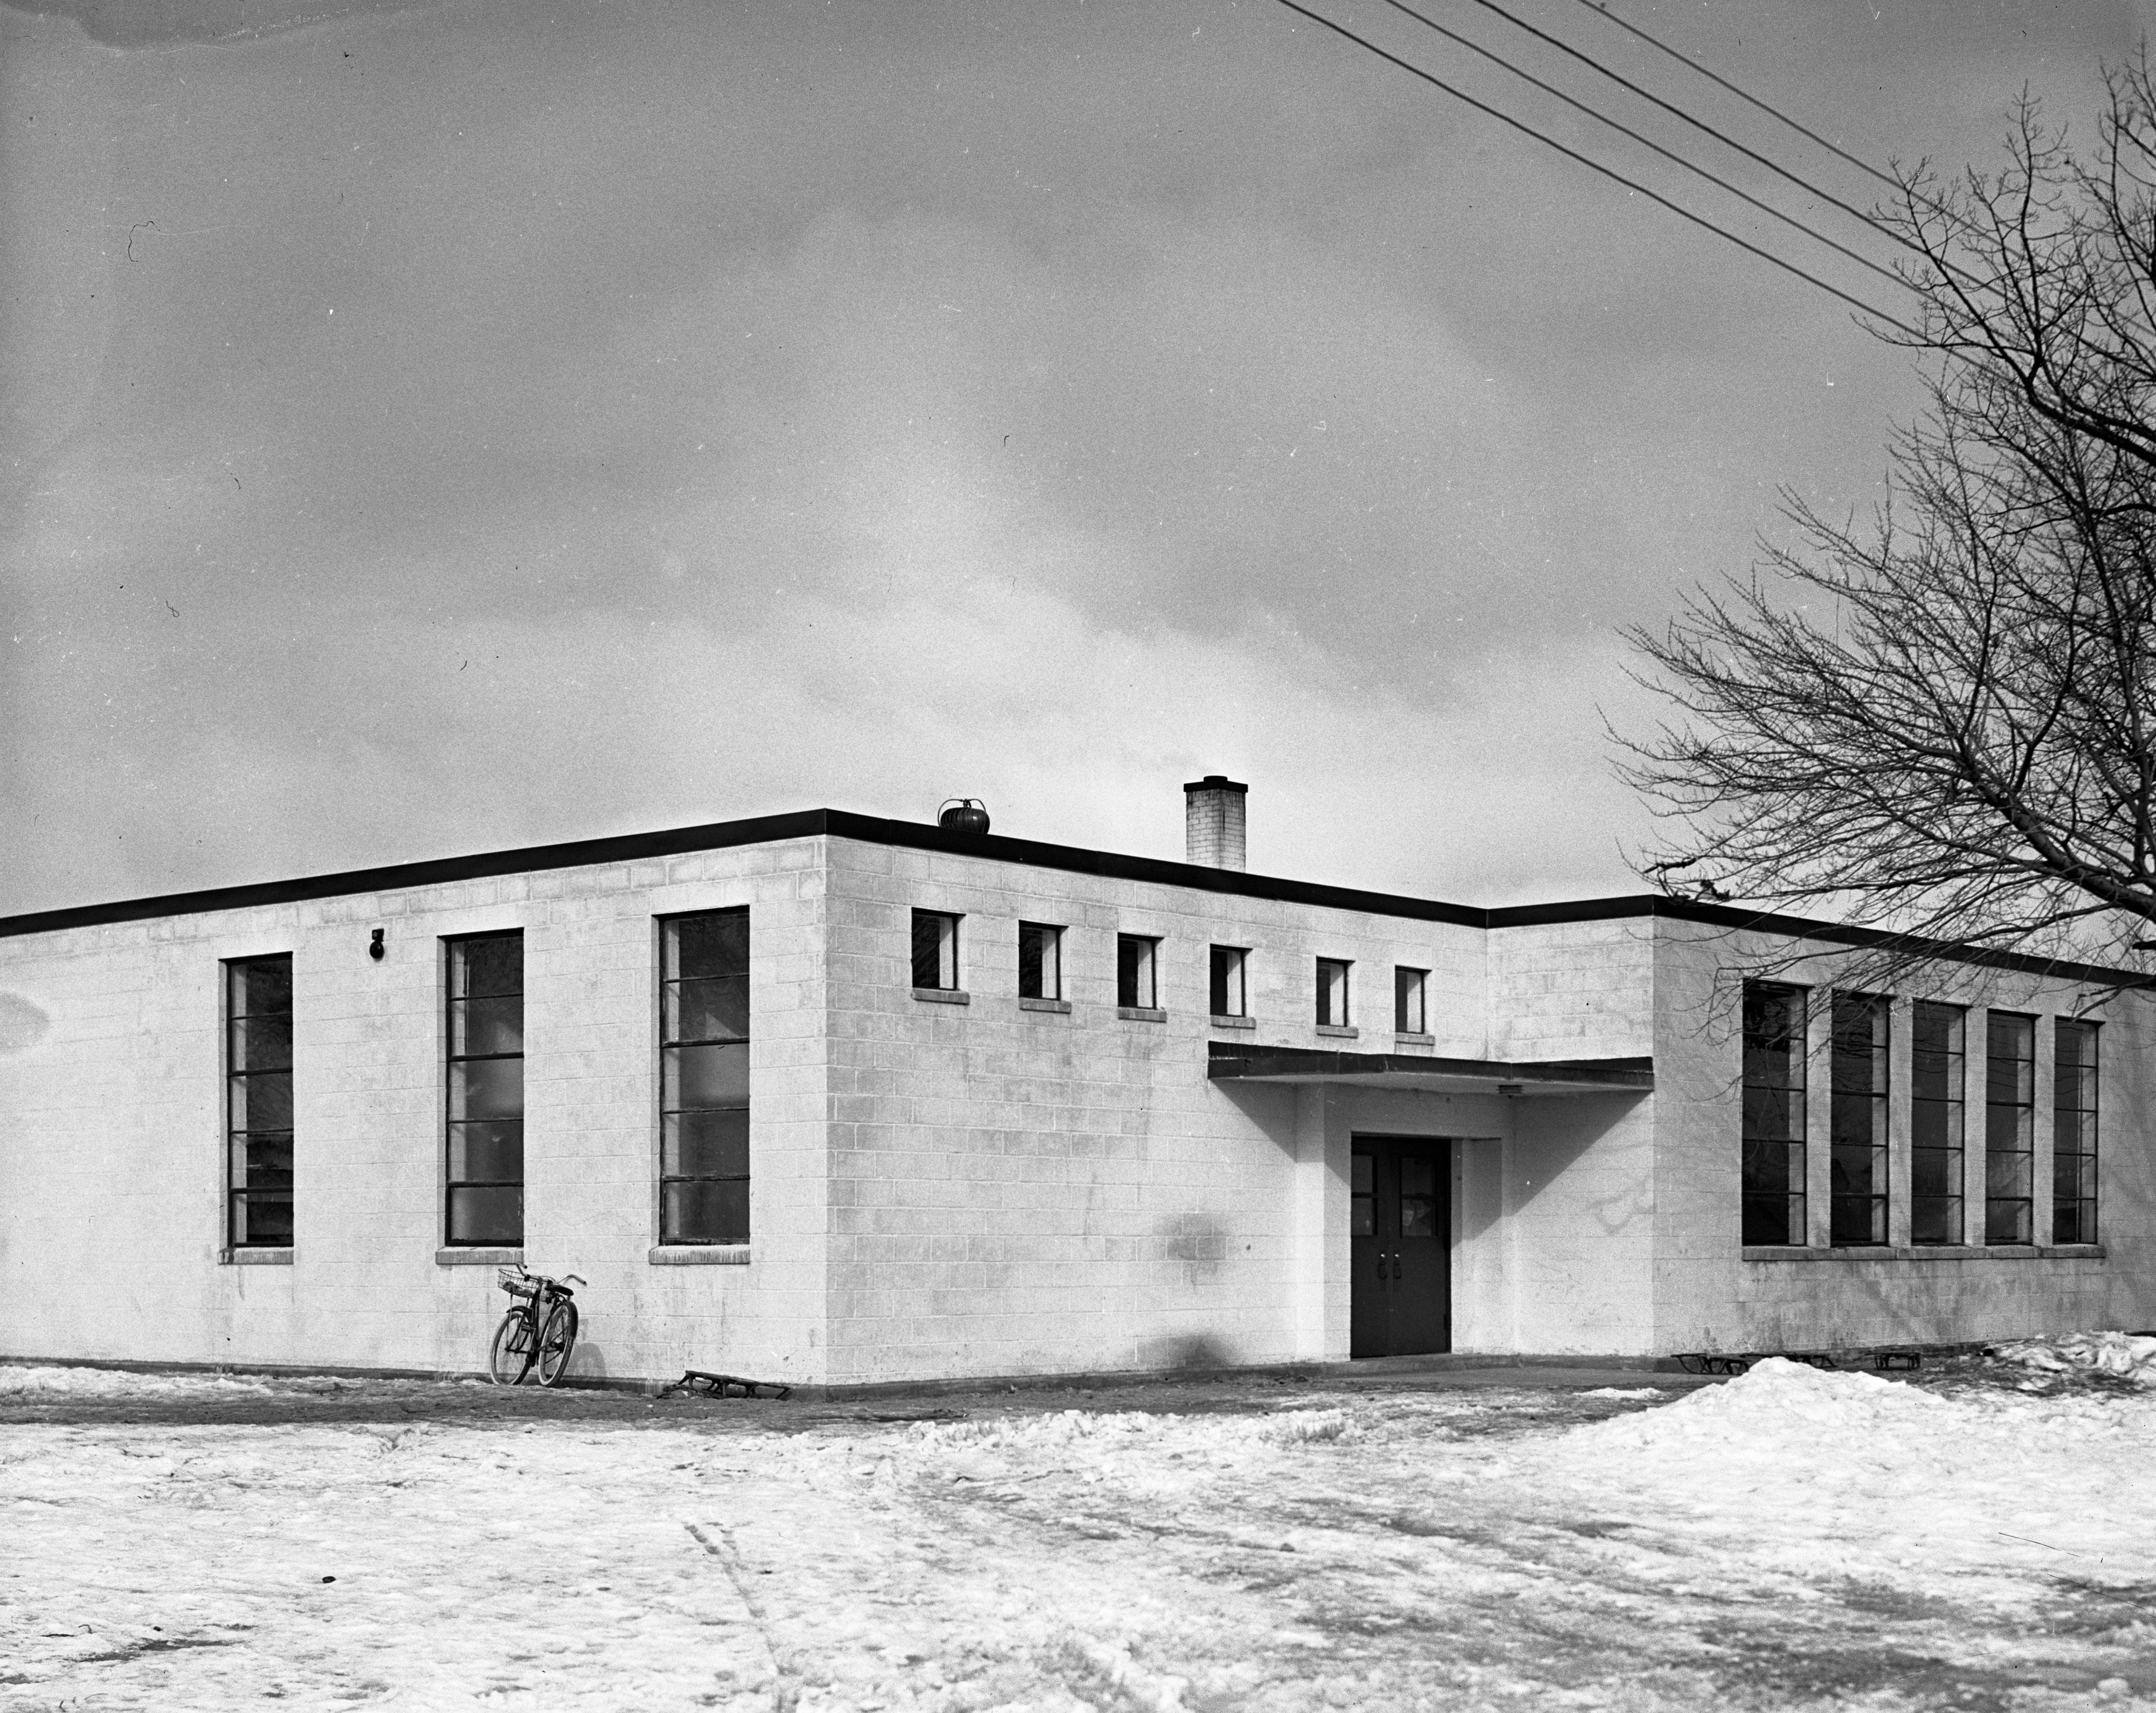 New school, Gregory, Michigan, February 1939 image